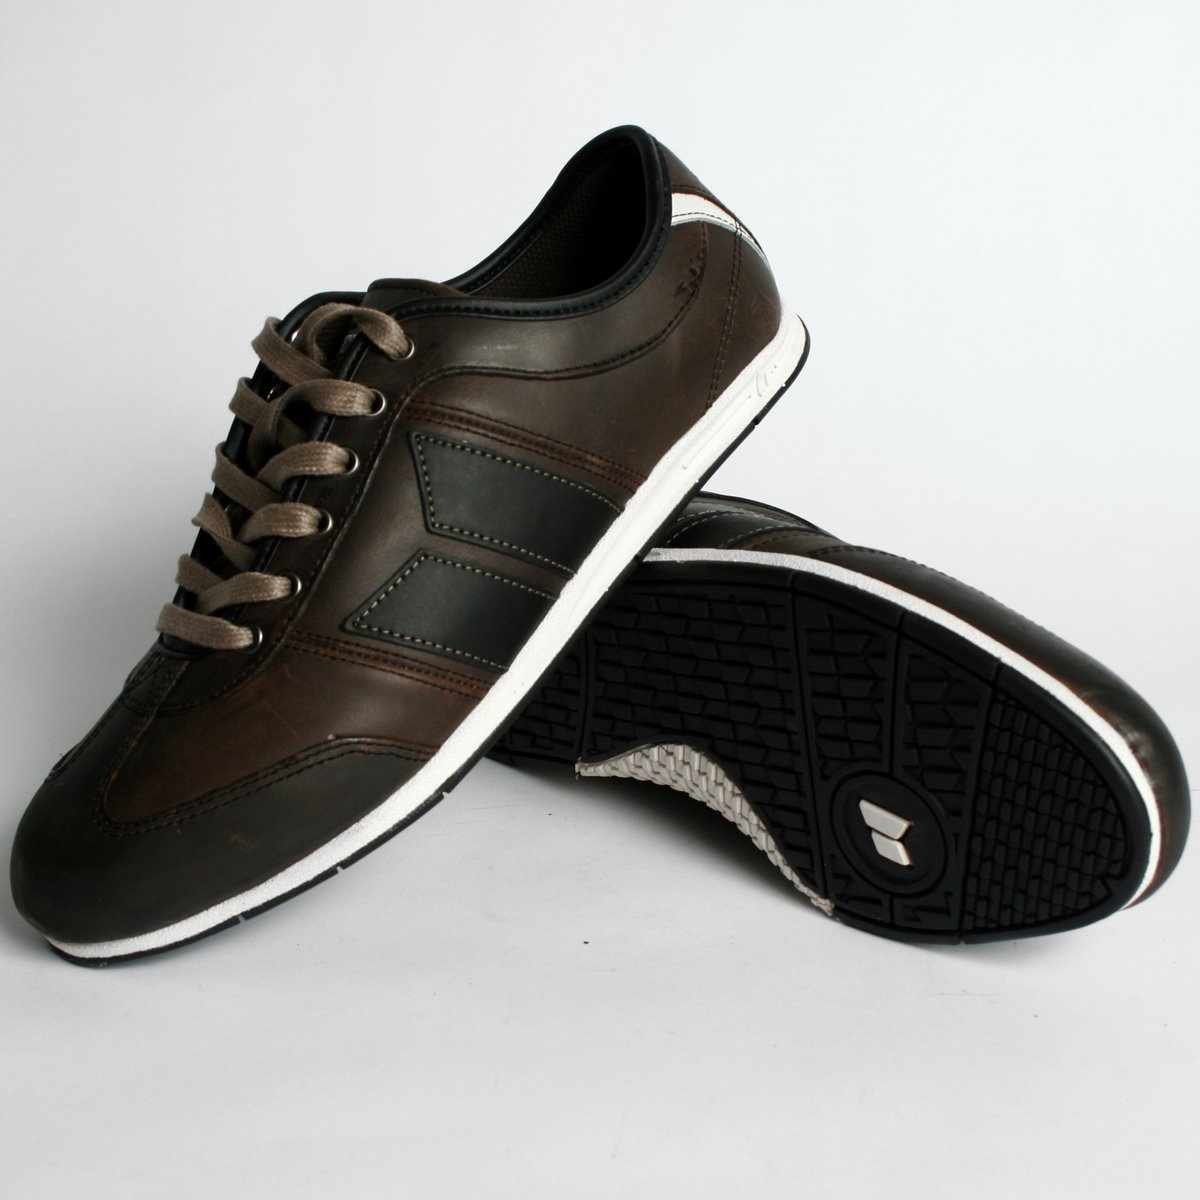 Macbeth Shoes Anthony Green Anthony Green Mens Shoes